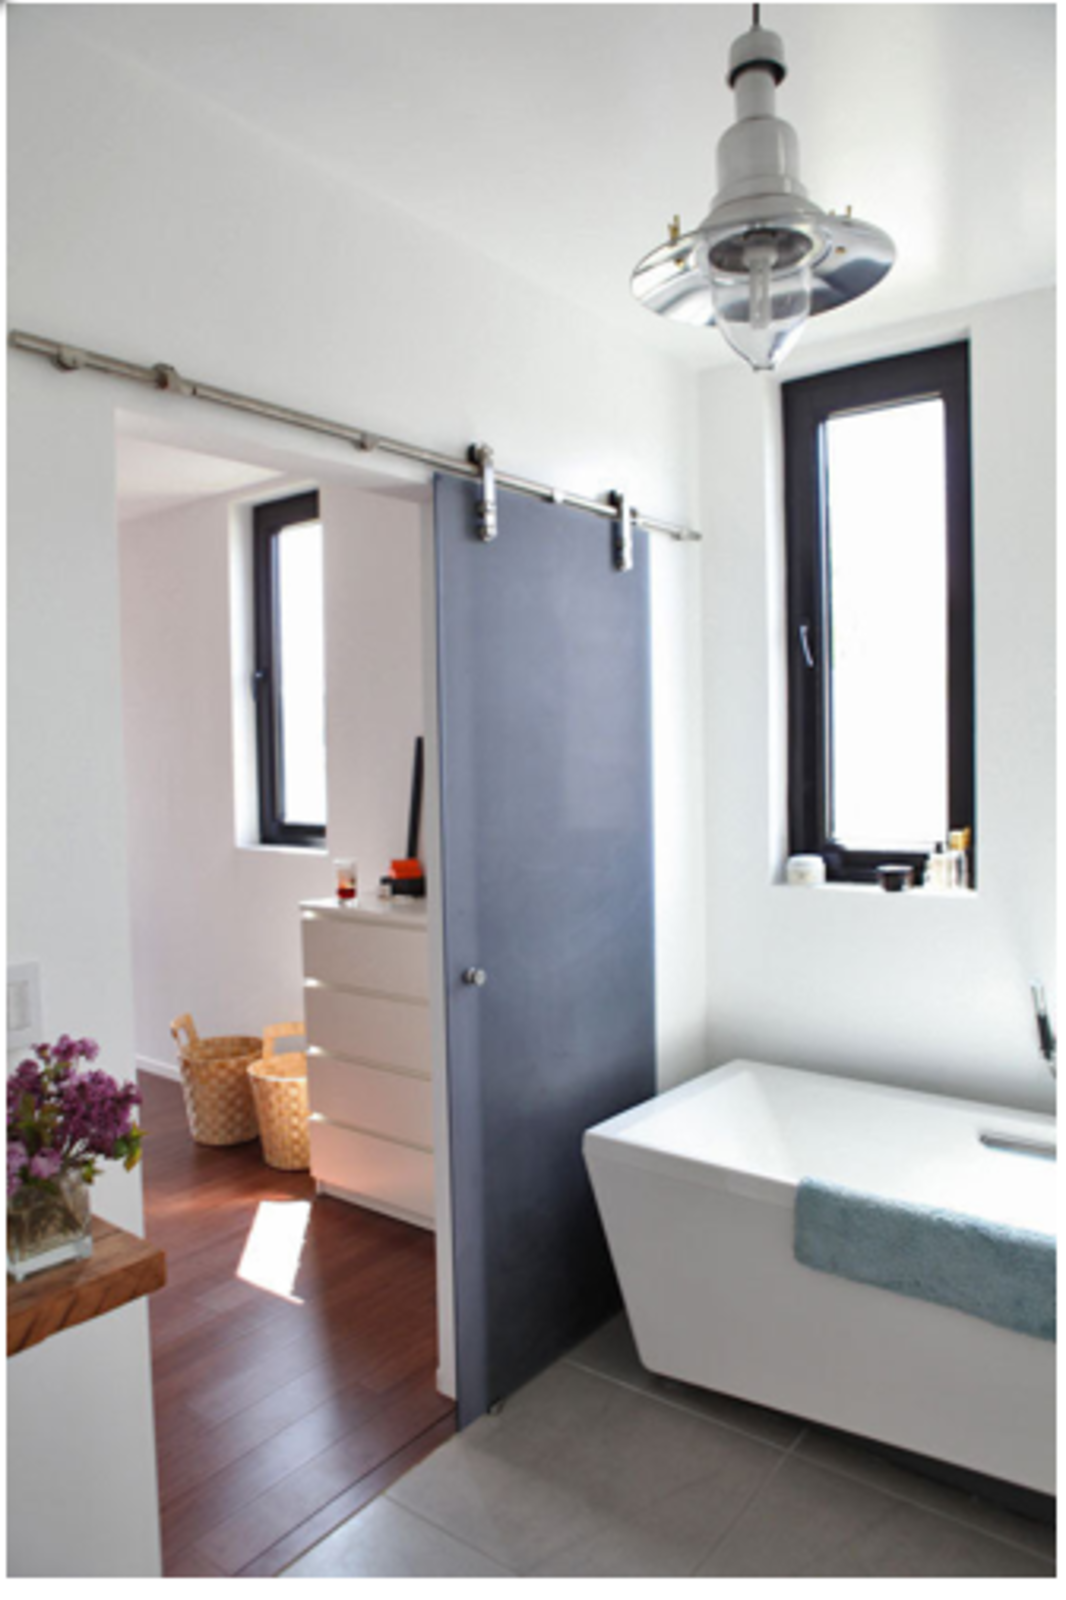 Translucent sliding doors with exposed hardware increase bathroom space and light.  Space-Saving Sliding Doors by Erika Heet from A Modern House on a Budget in Los Angeles